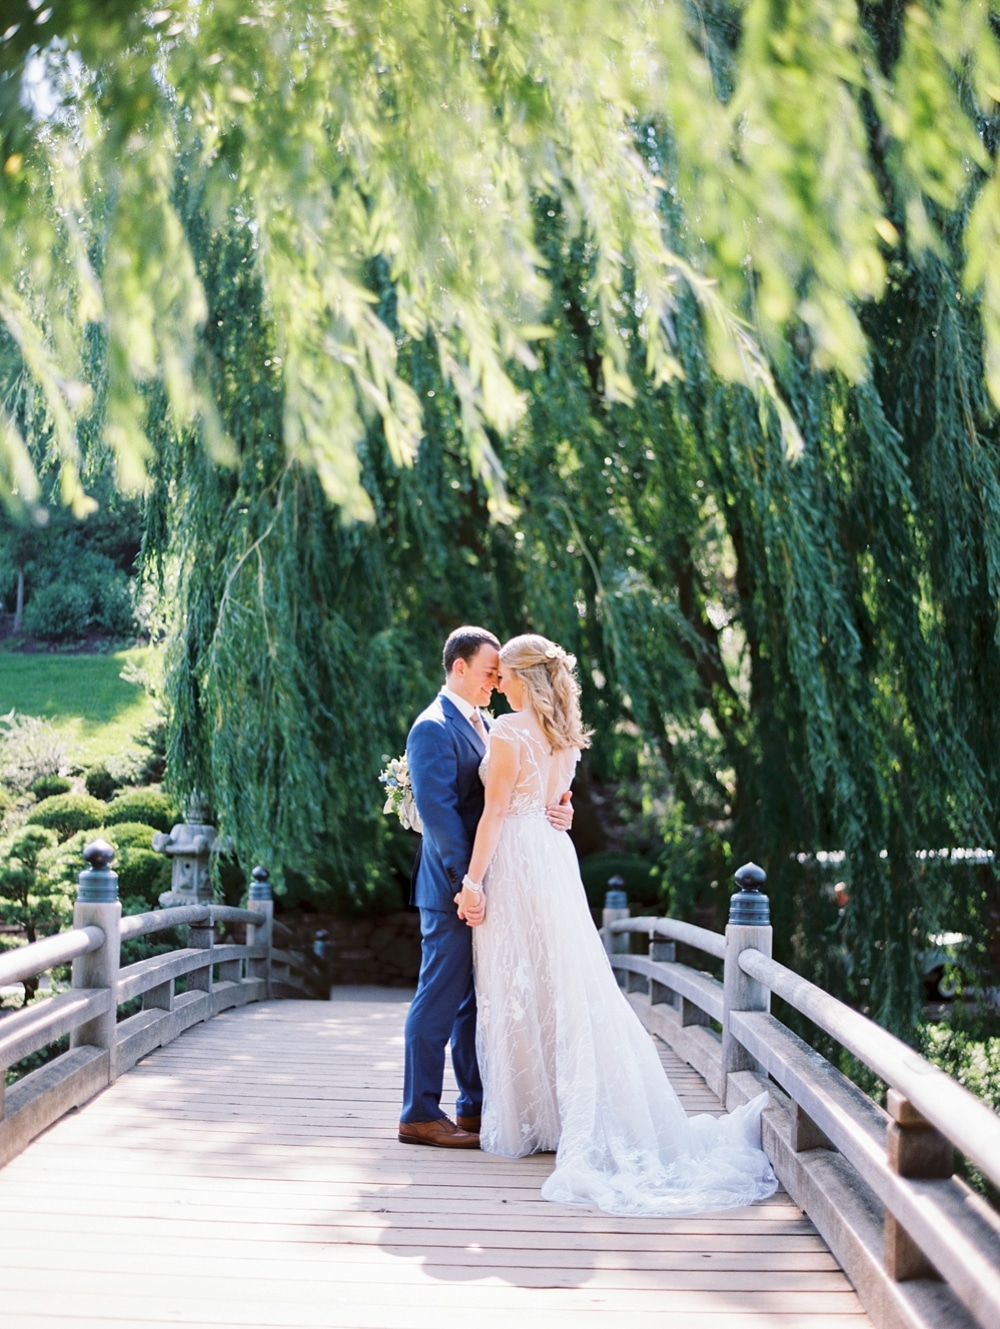 Kristin-La-Voie-Photography-Chicago-Botanic-Garden-Wedding-Photographer-50